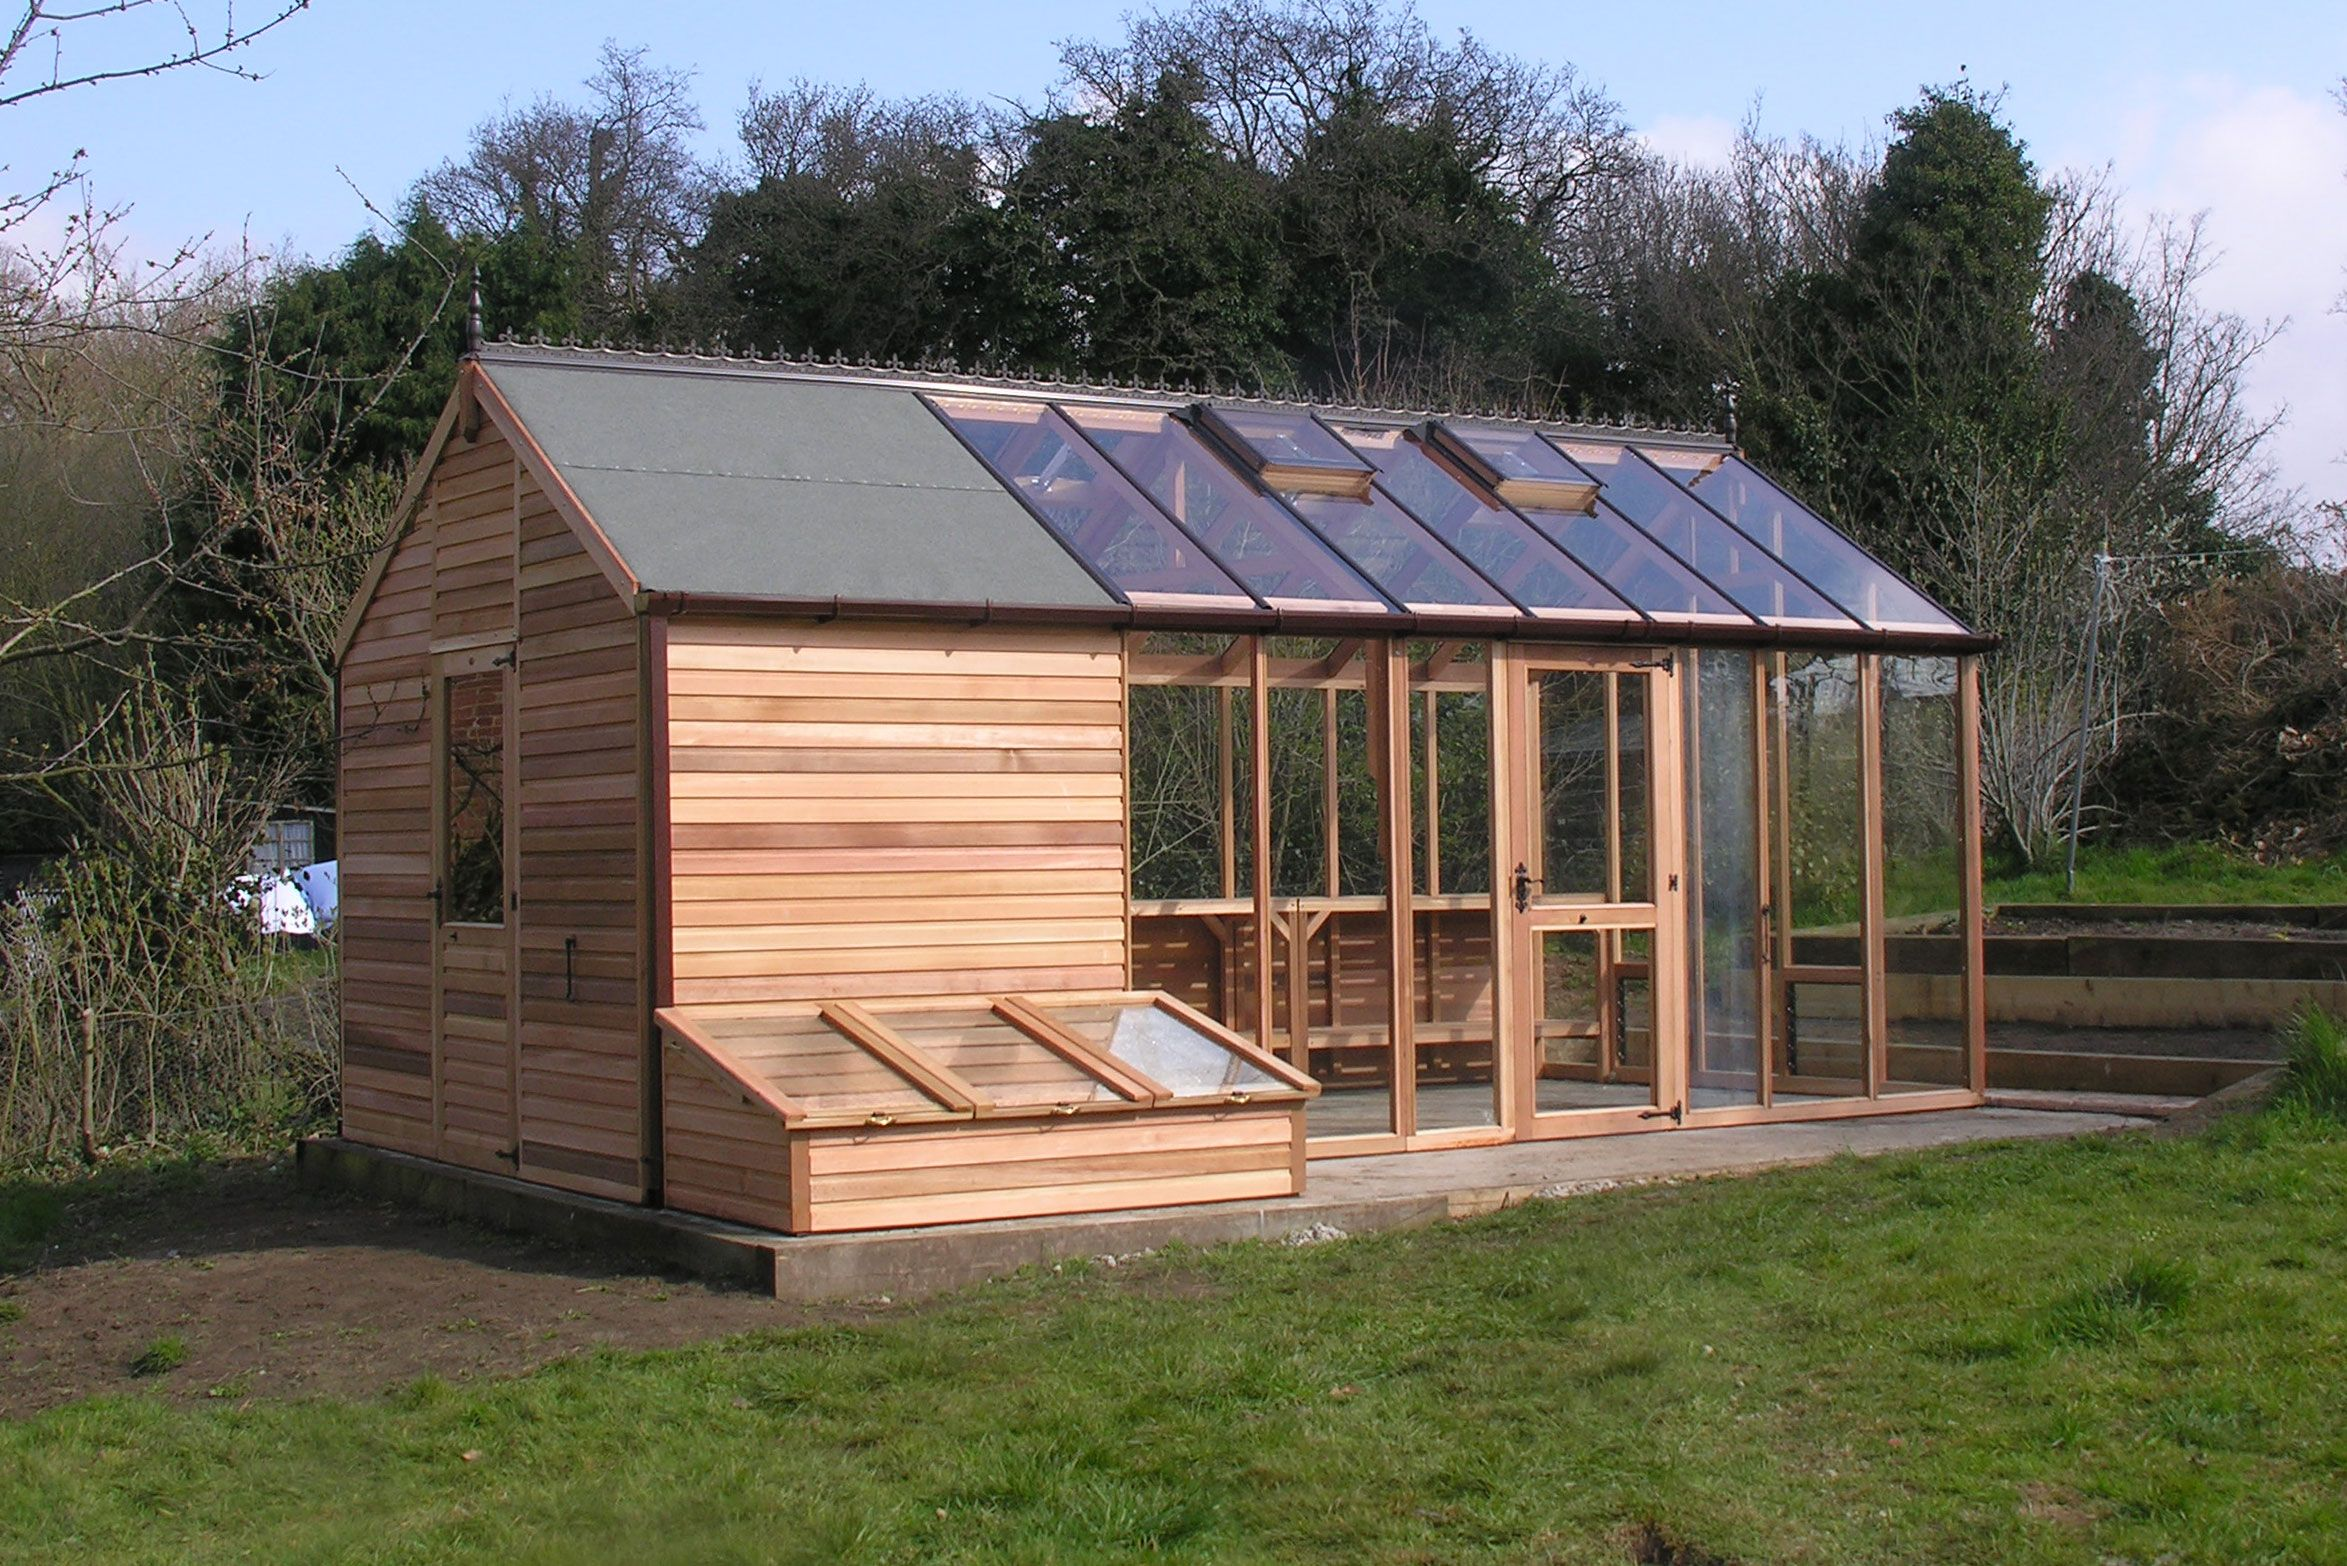 shed plans greenhouses at bramshall staffordshire england woodpecker joinery uk ltd now you can build any shed in a weekend even if youve zero - Garden Sheds With Greenhouse